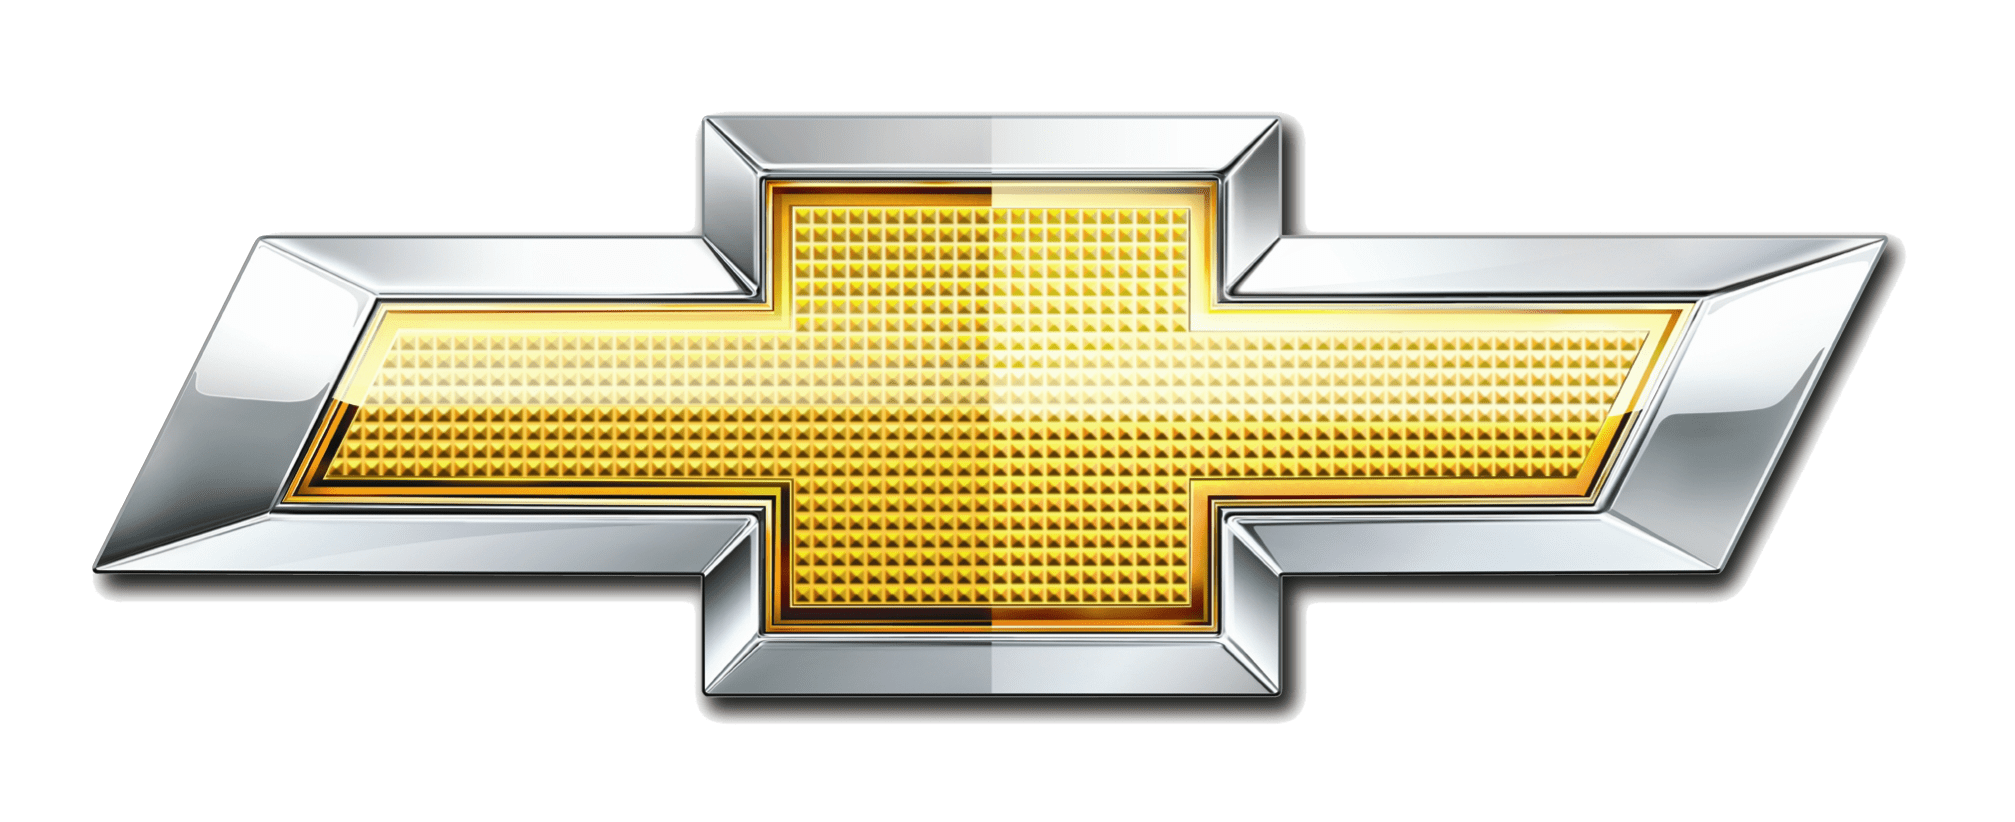 Chevrolet Logo, Chevy Meaning And History  World Cars Brands